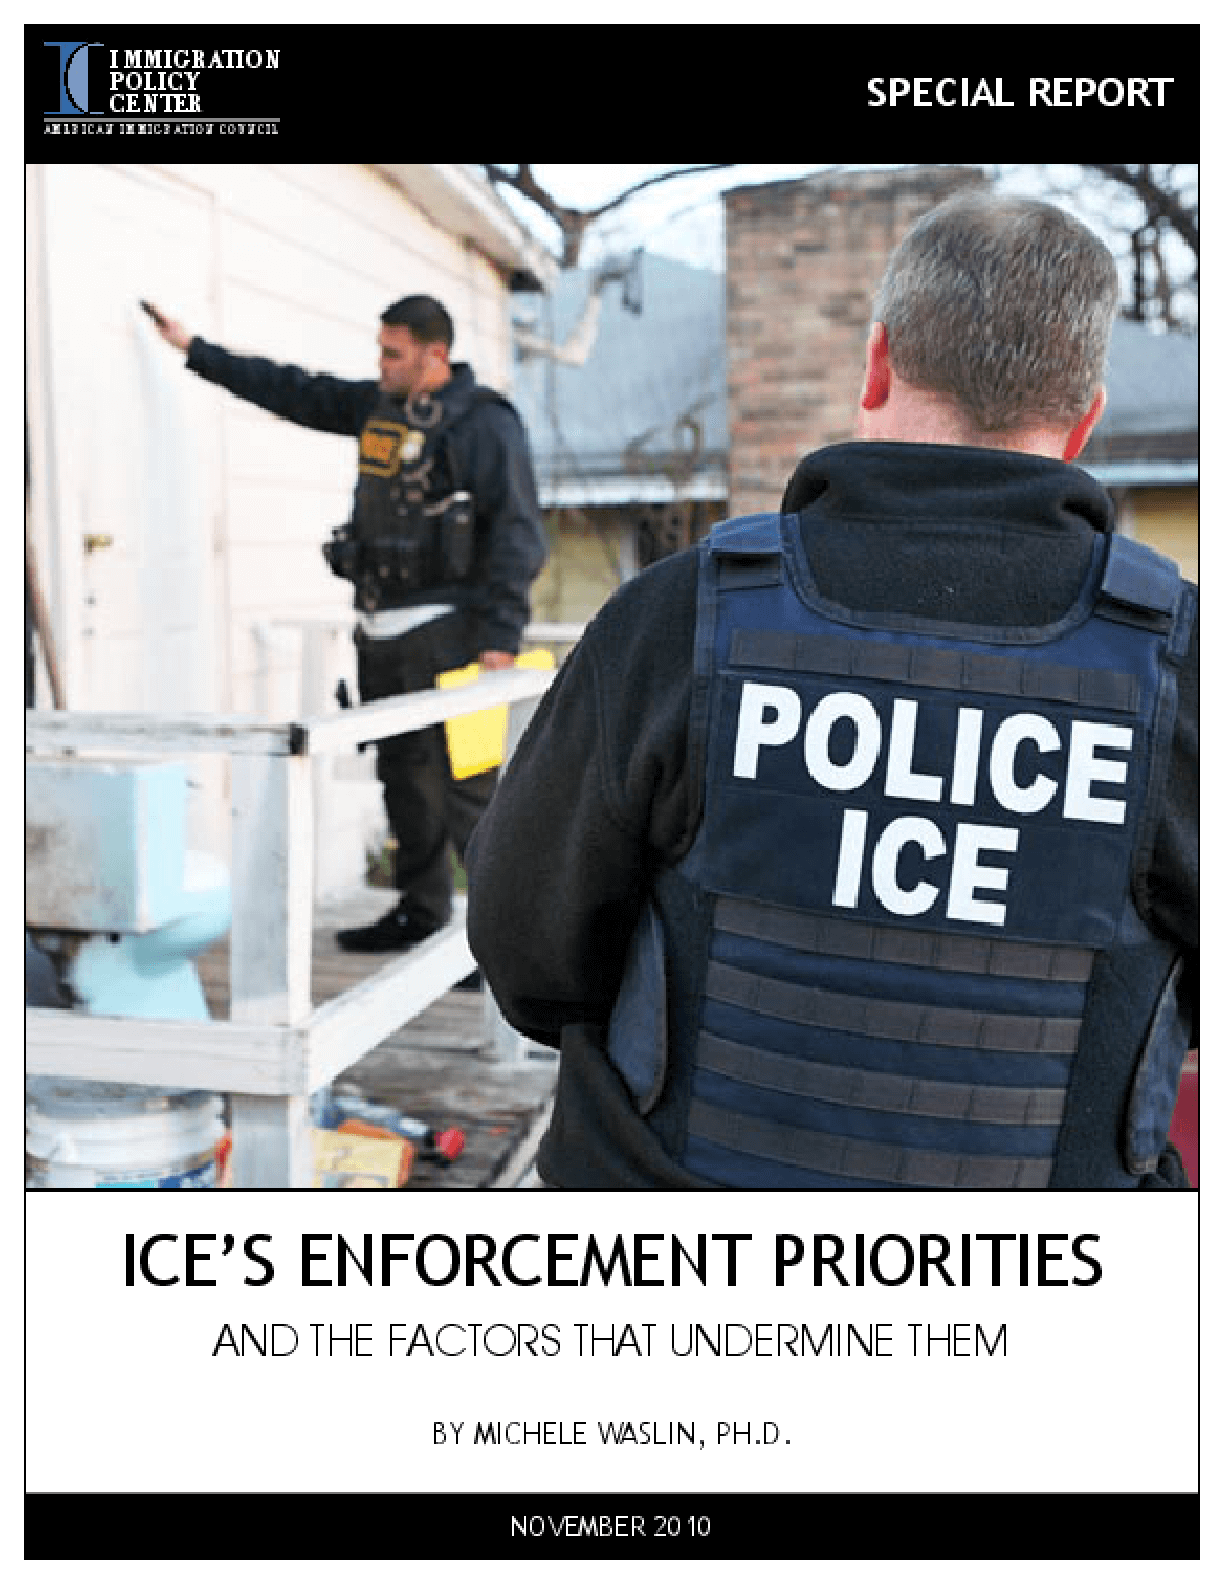 ICE'S Enforcement Priorities and the Factors that Undermine Them